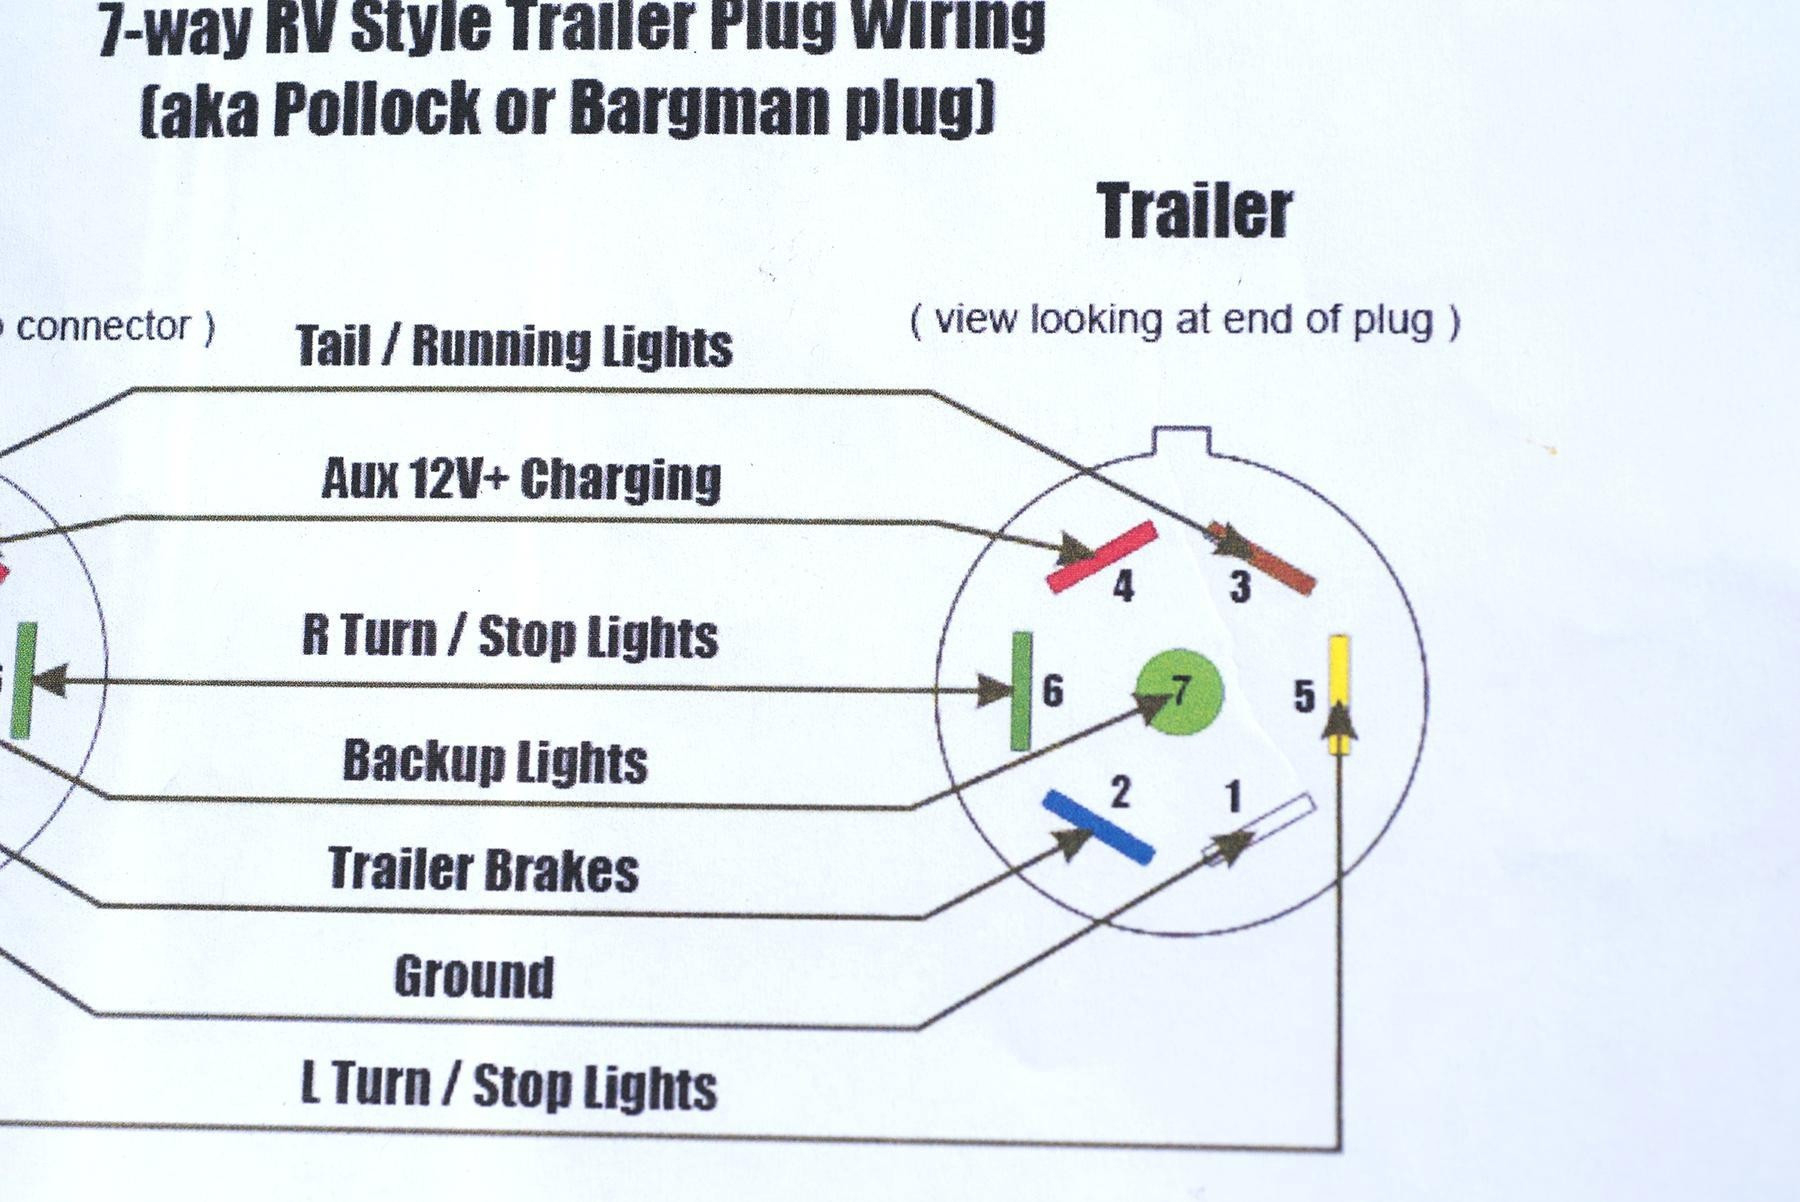 Reese 7 Wire Trailer Plug Diagram - Wiring Diagram Detailed - Trailer Plug Wiring Diagram